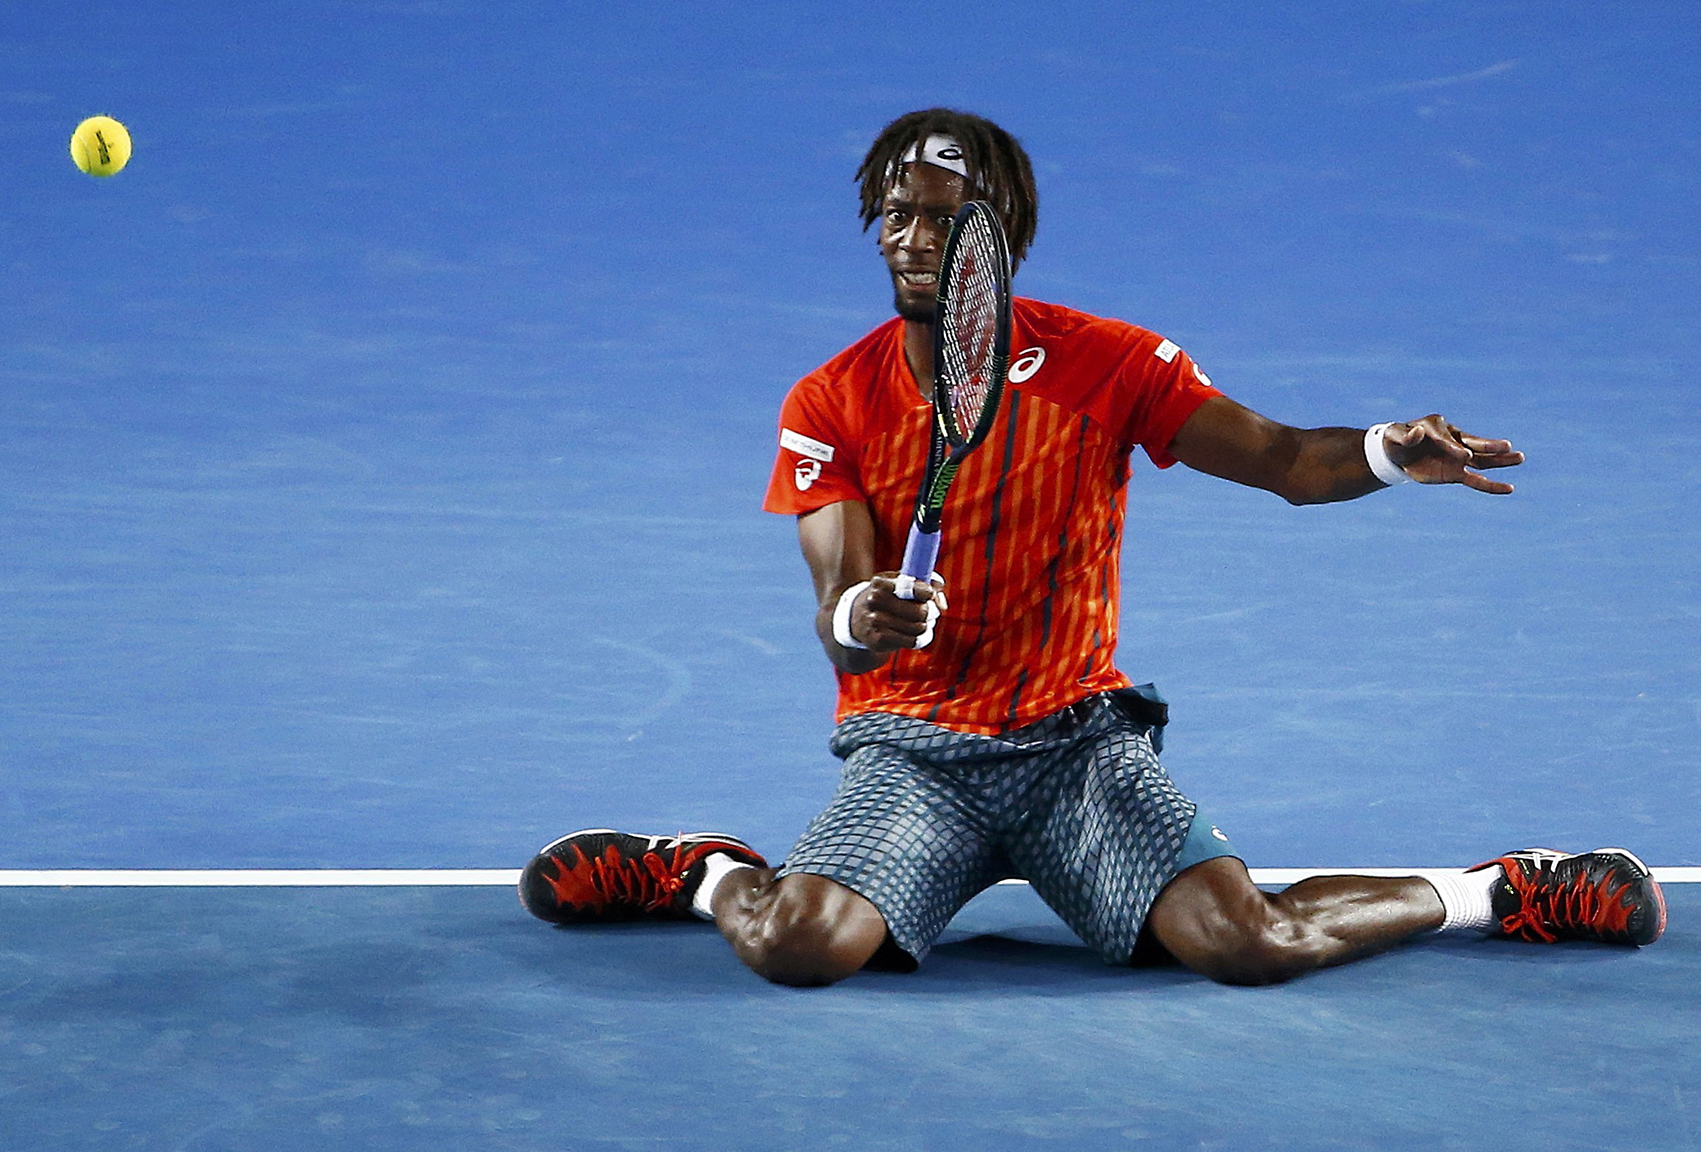 France's Monfils hits a shot on his knees during his quarter-final match against Canada's Raonic at the Australian Open tennis tournament at Melbourne Park